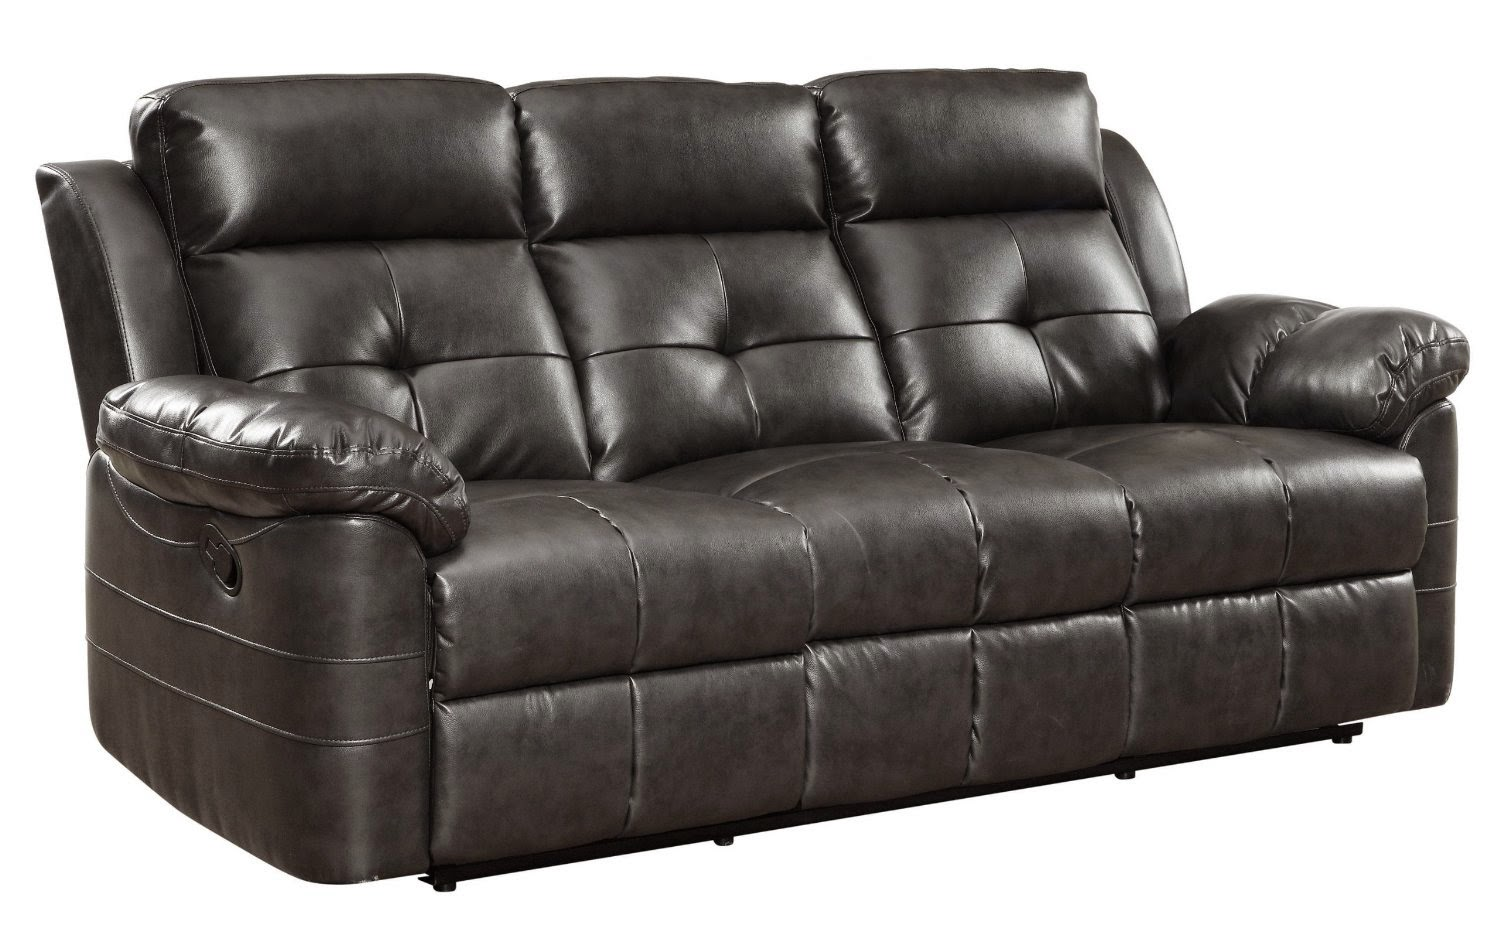 reclining sofas ratings reviews curved leather reclining sofa set